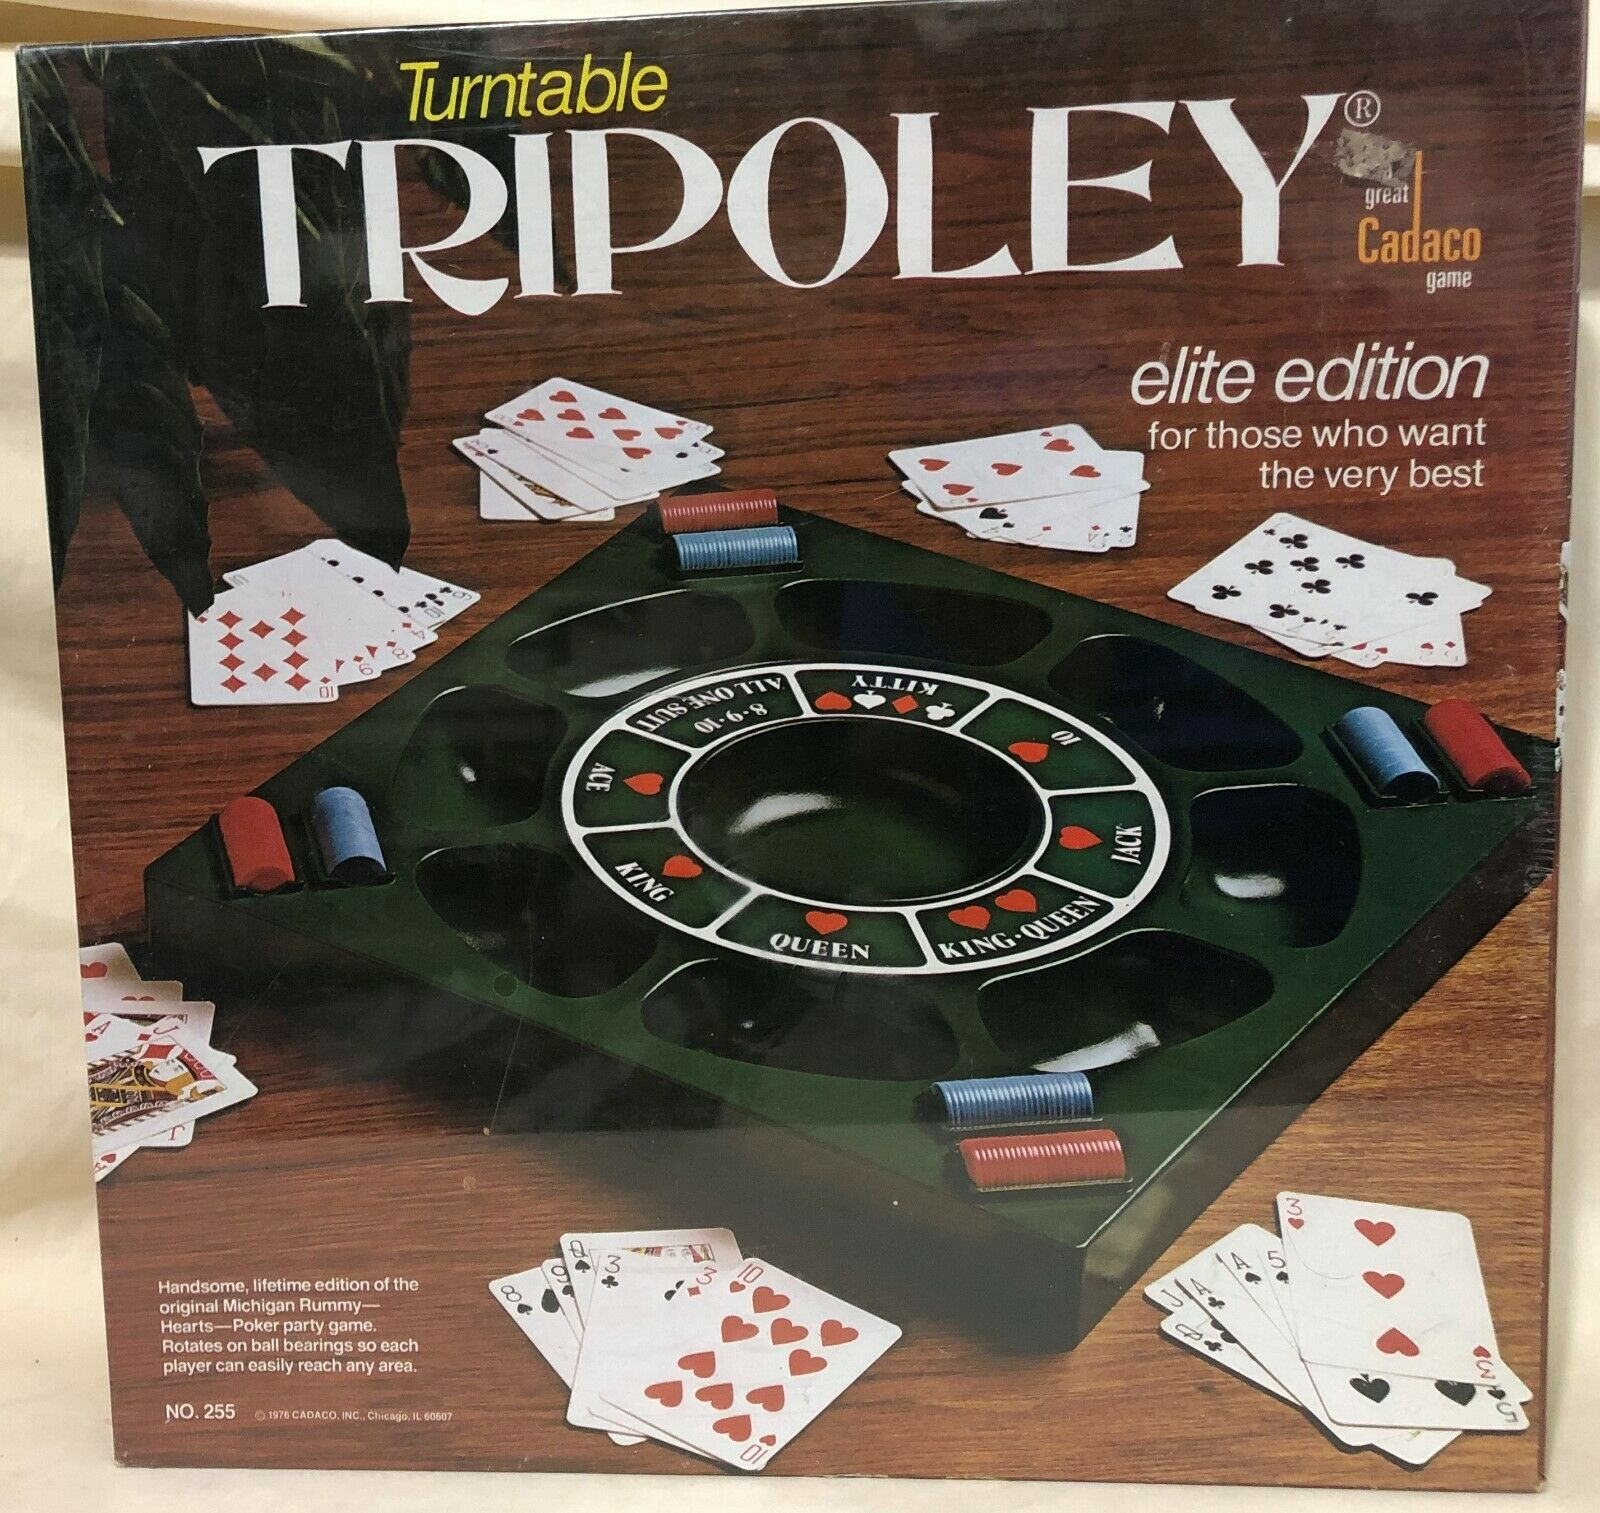 Turntable Tripoley by Cadaco 1976 Edition - Brand New   Factory Sealed 255